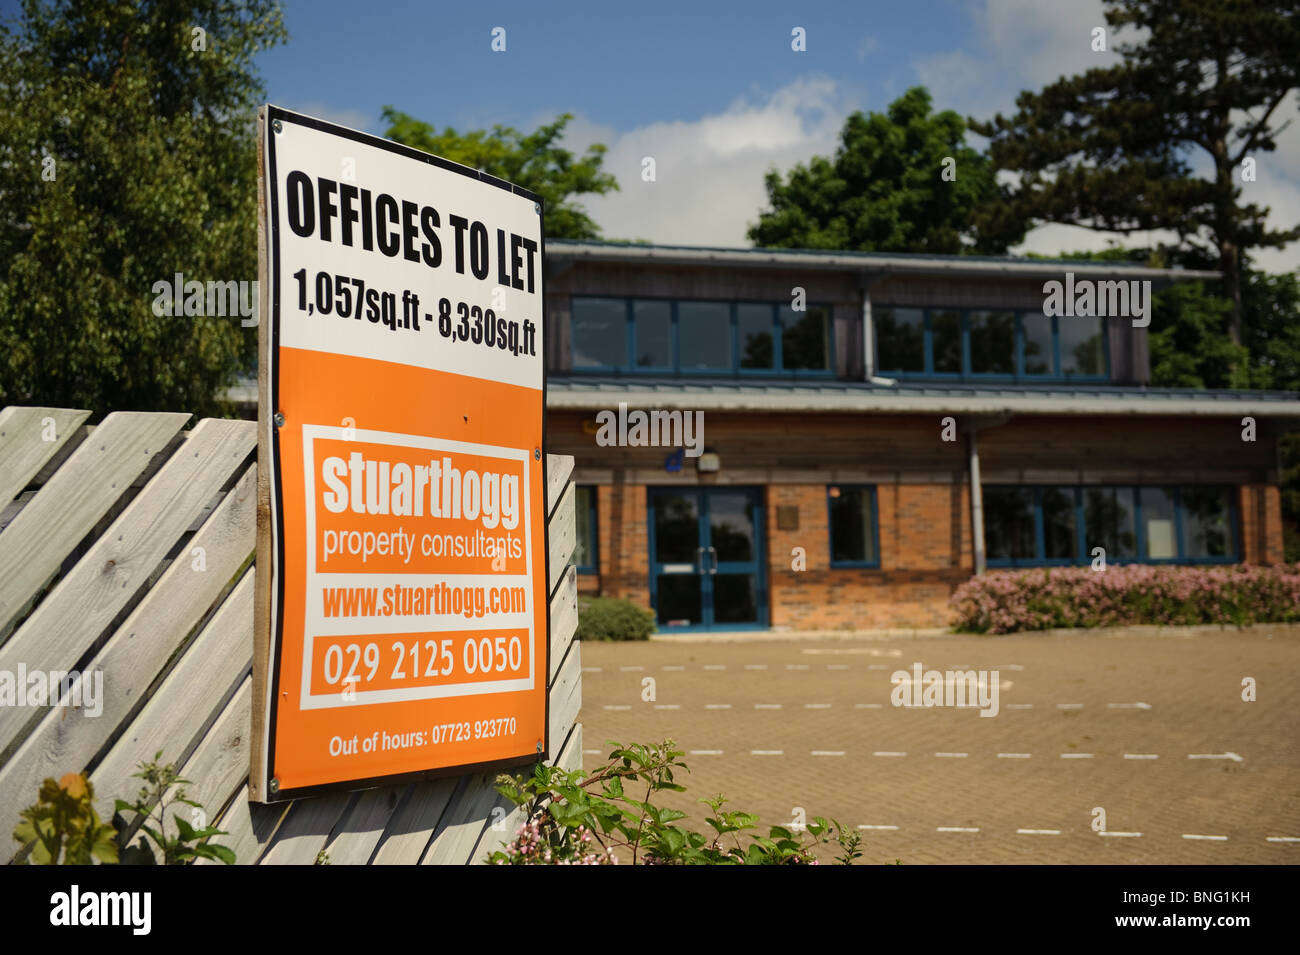 Empty offices to let on Aberystwyth Science park Wales UK - Stock Image